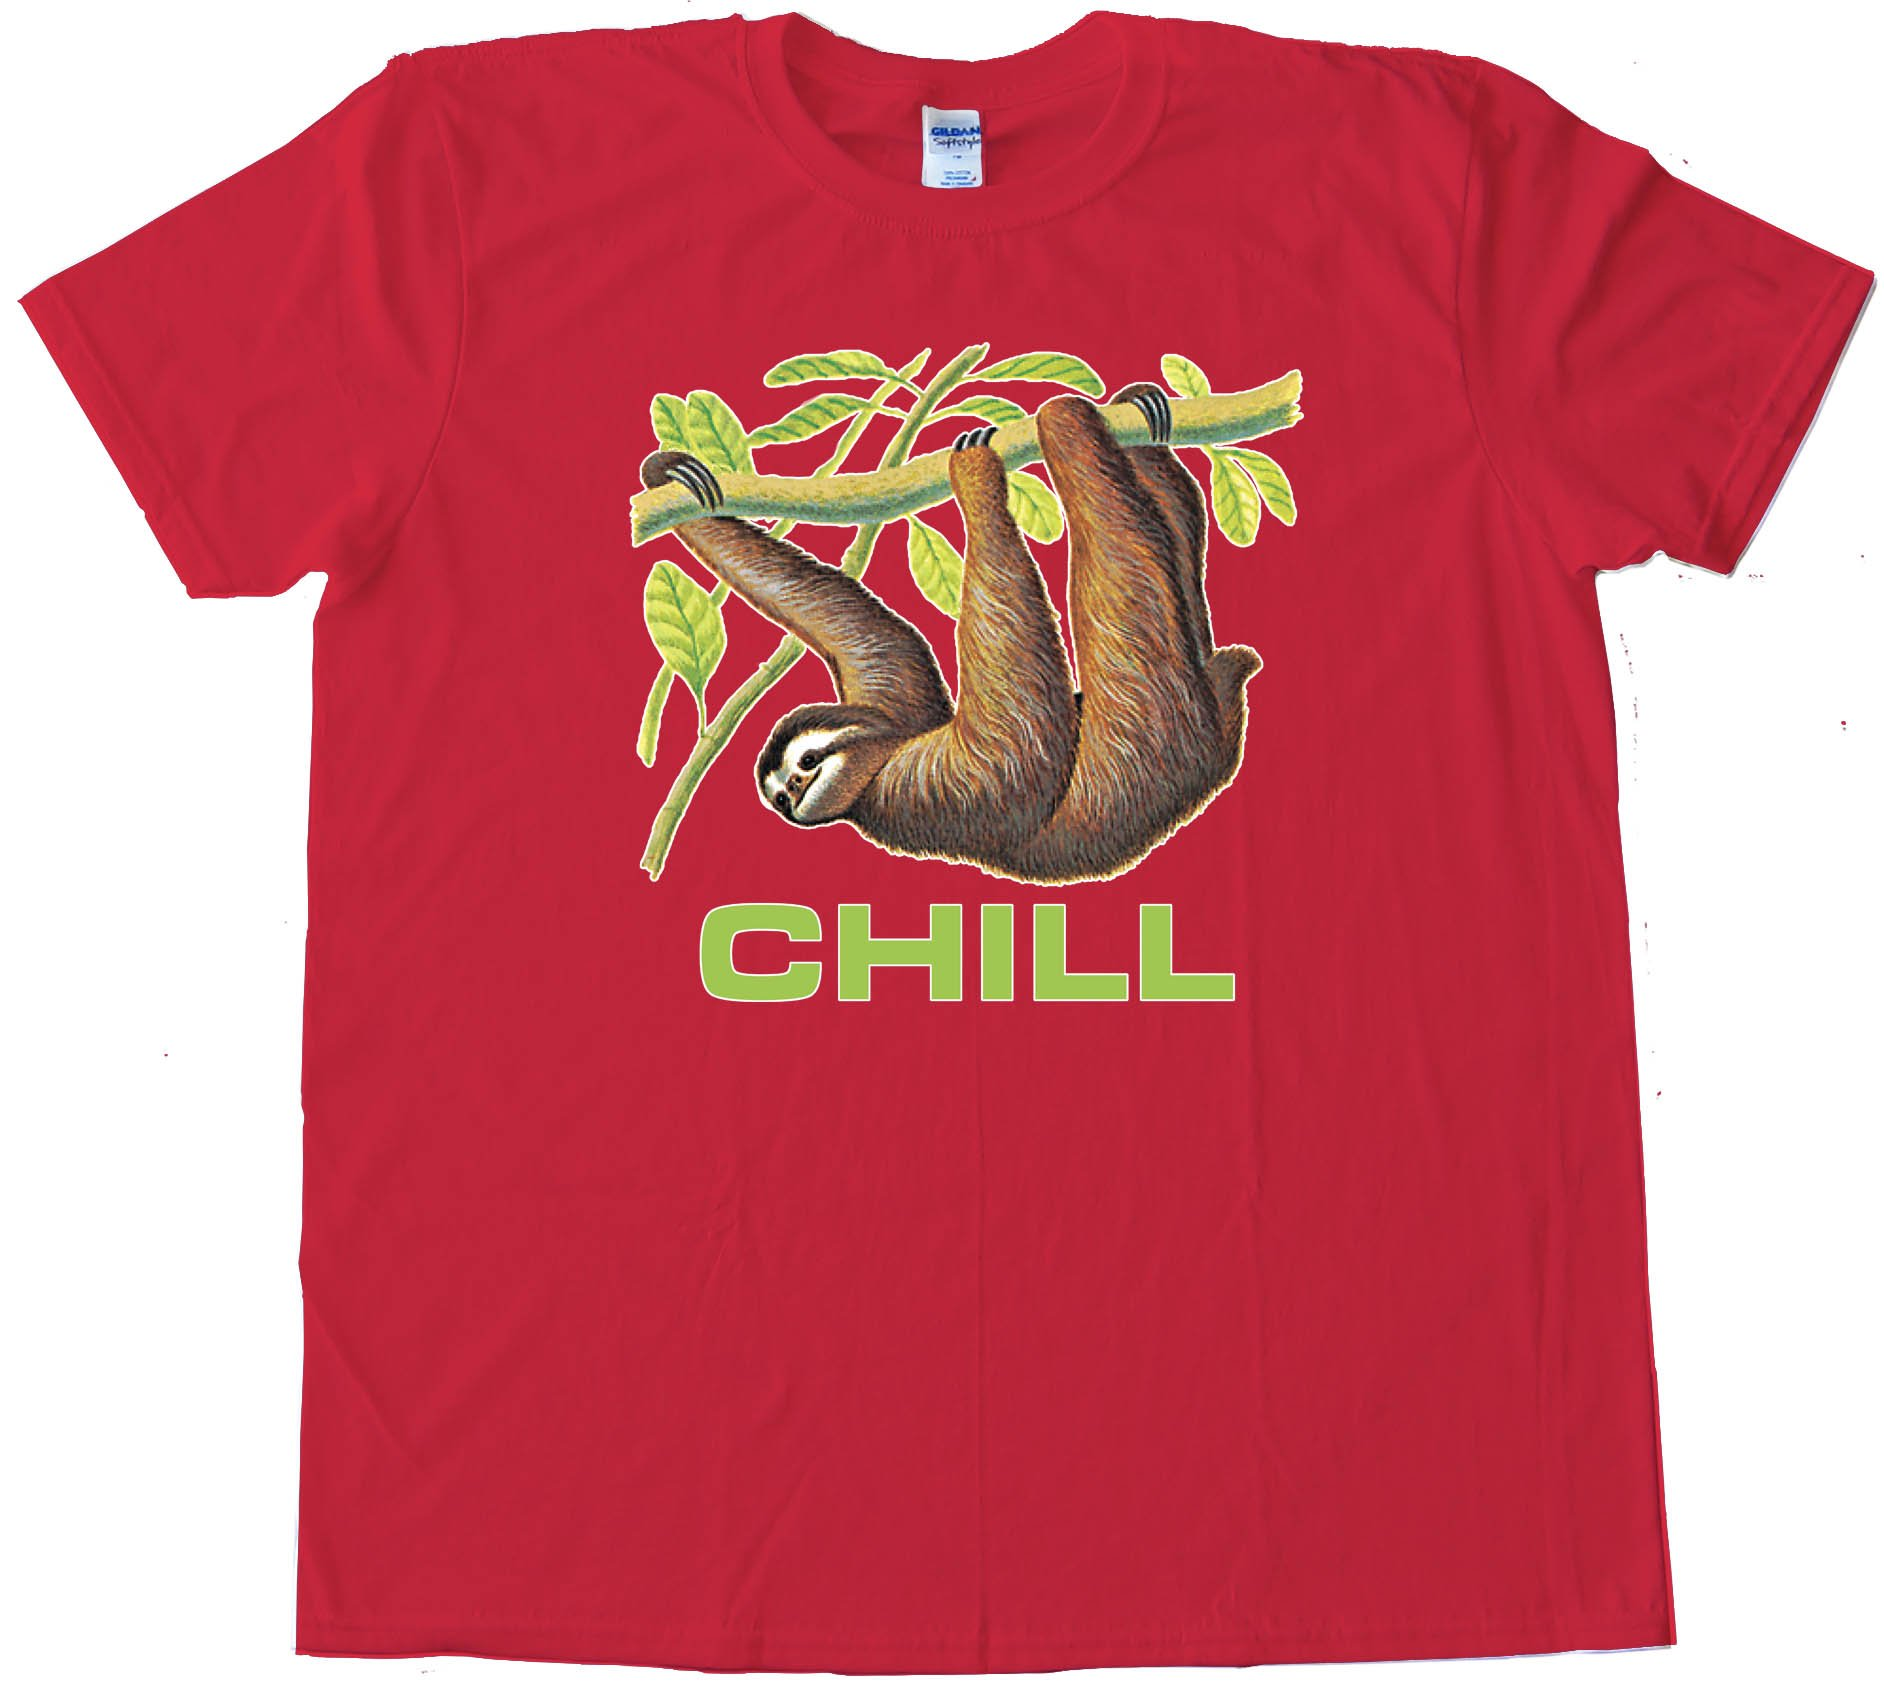 Chill Sloth - Tee Shirt